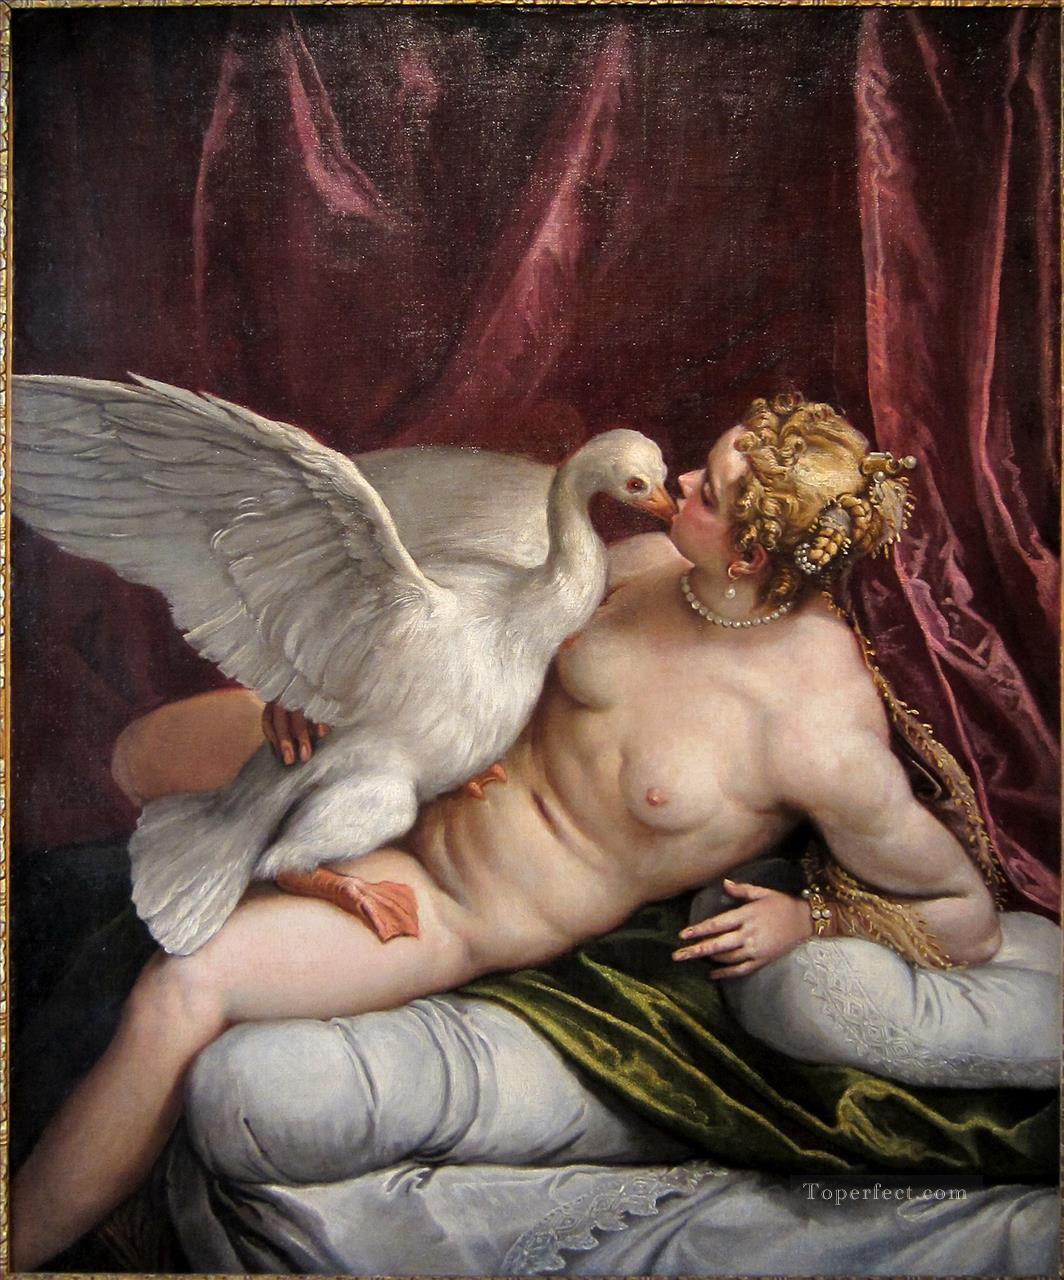 paolo veronese leda and the swan in the palace of fesch ajaccio Classic nude Oil Paintings